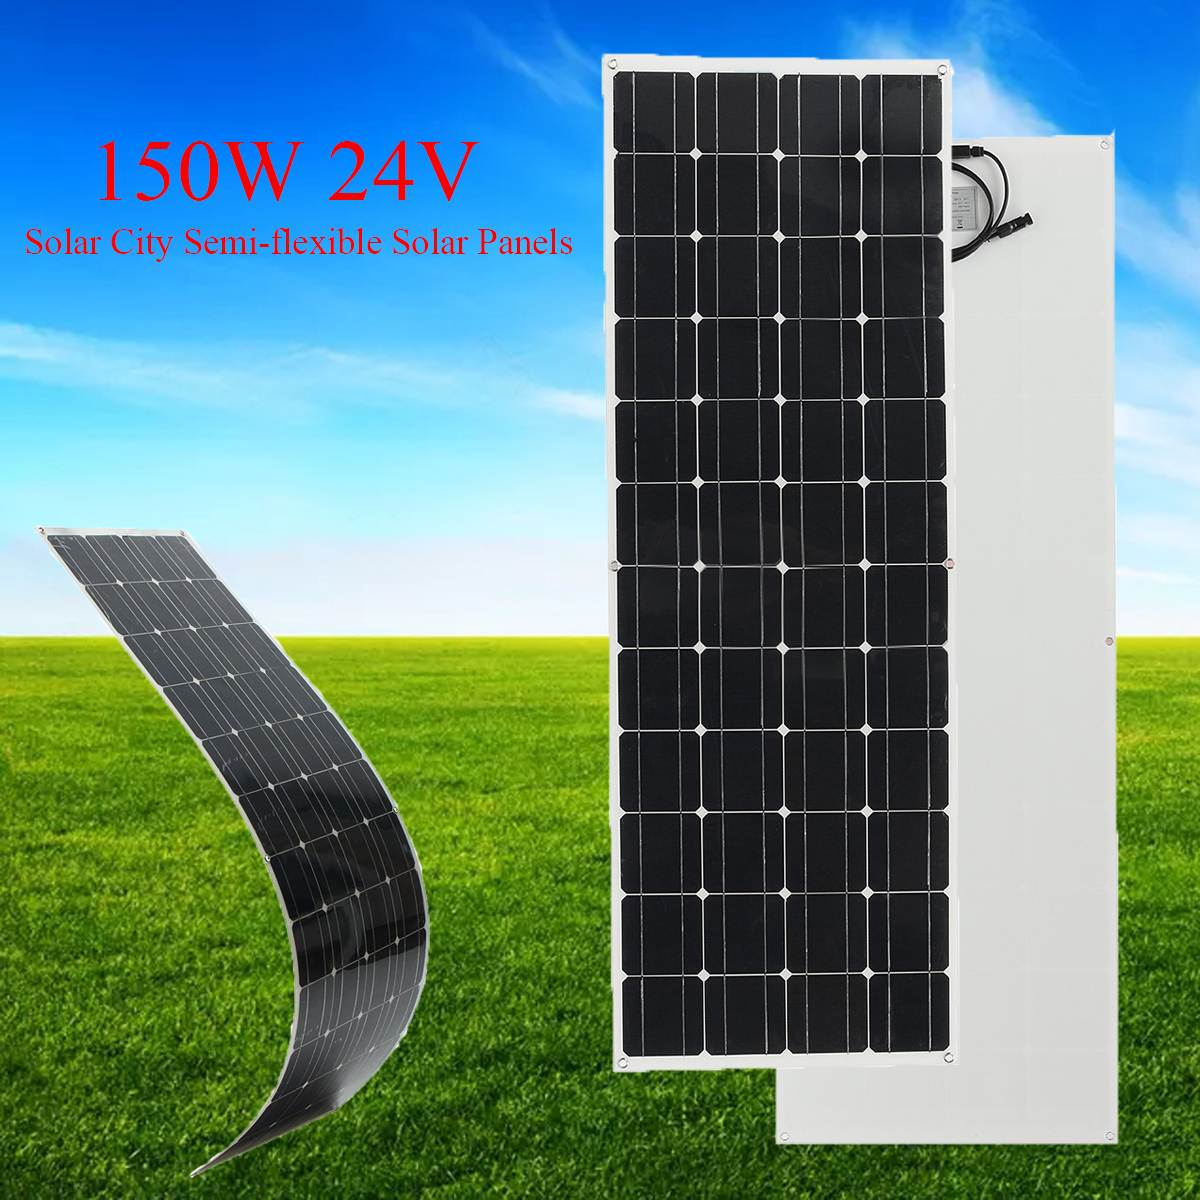 KINCO EL-06 150W/24V Semi Flexible Monocrystalline Solar Panel DIY Solar City Chip System Power Supply  + 1.5m Cable 50w 12v semi flexible monocrystalline silicon solar panel solar battery power generater for battery rv car boat aircraft tourism